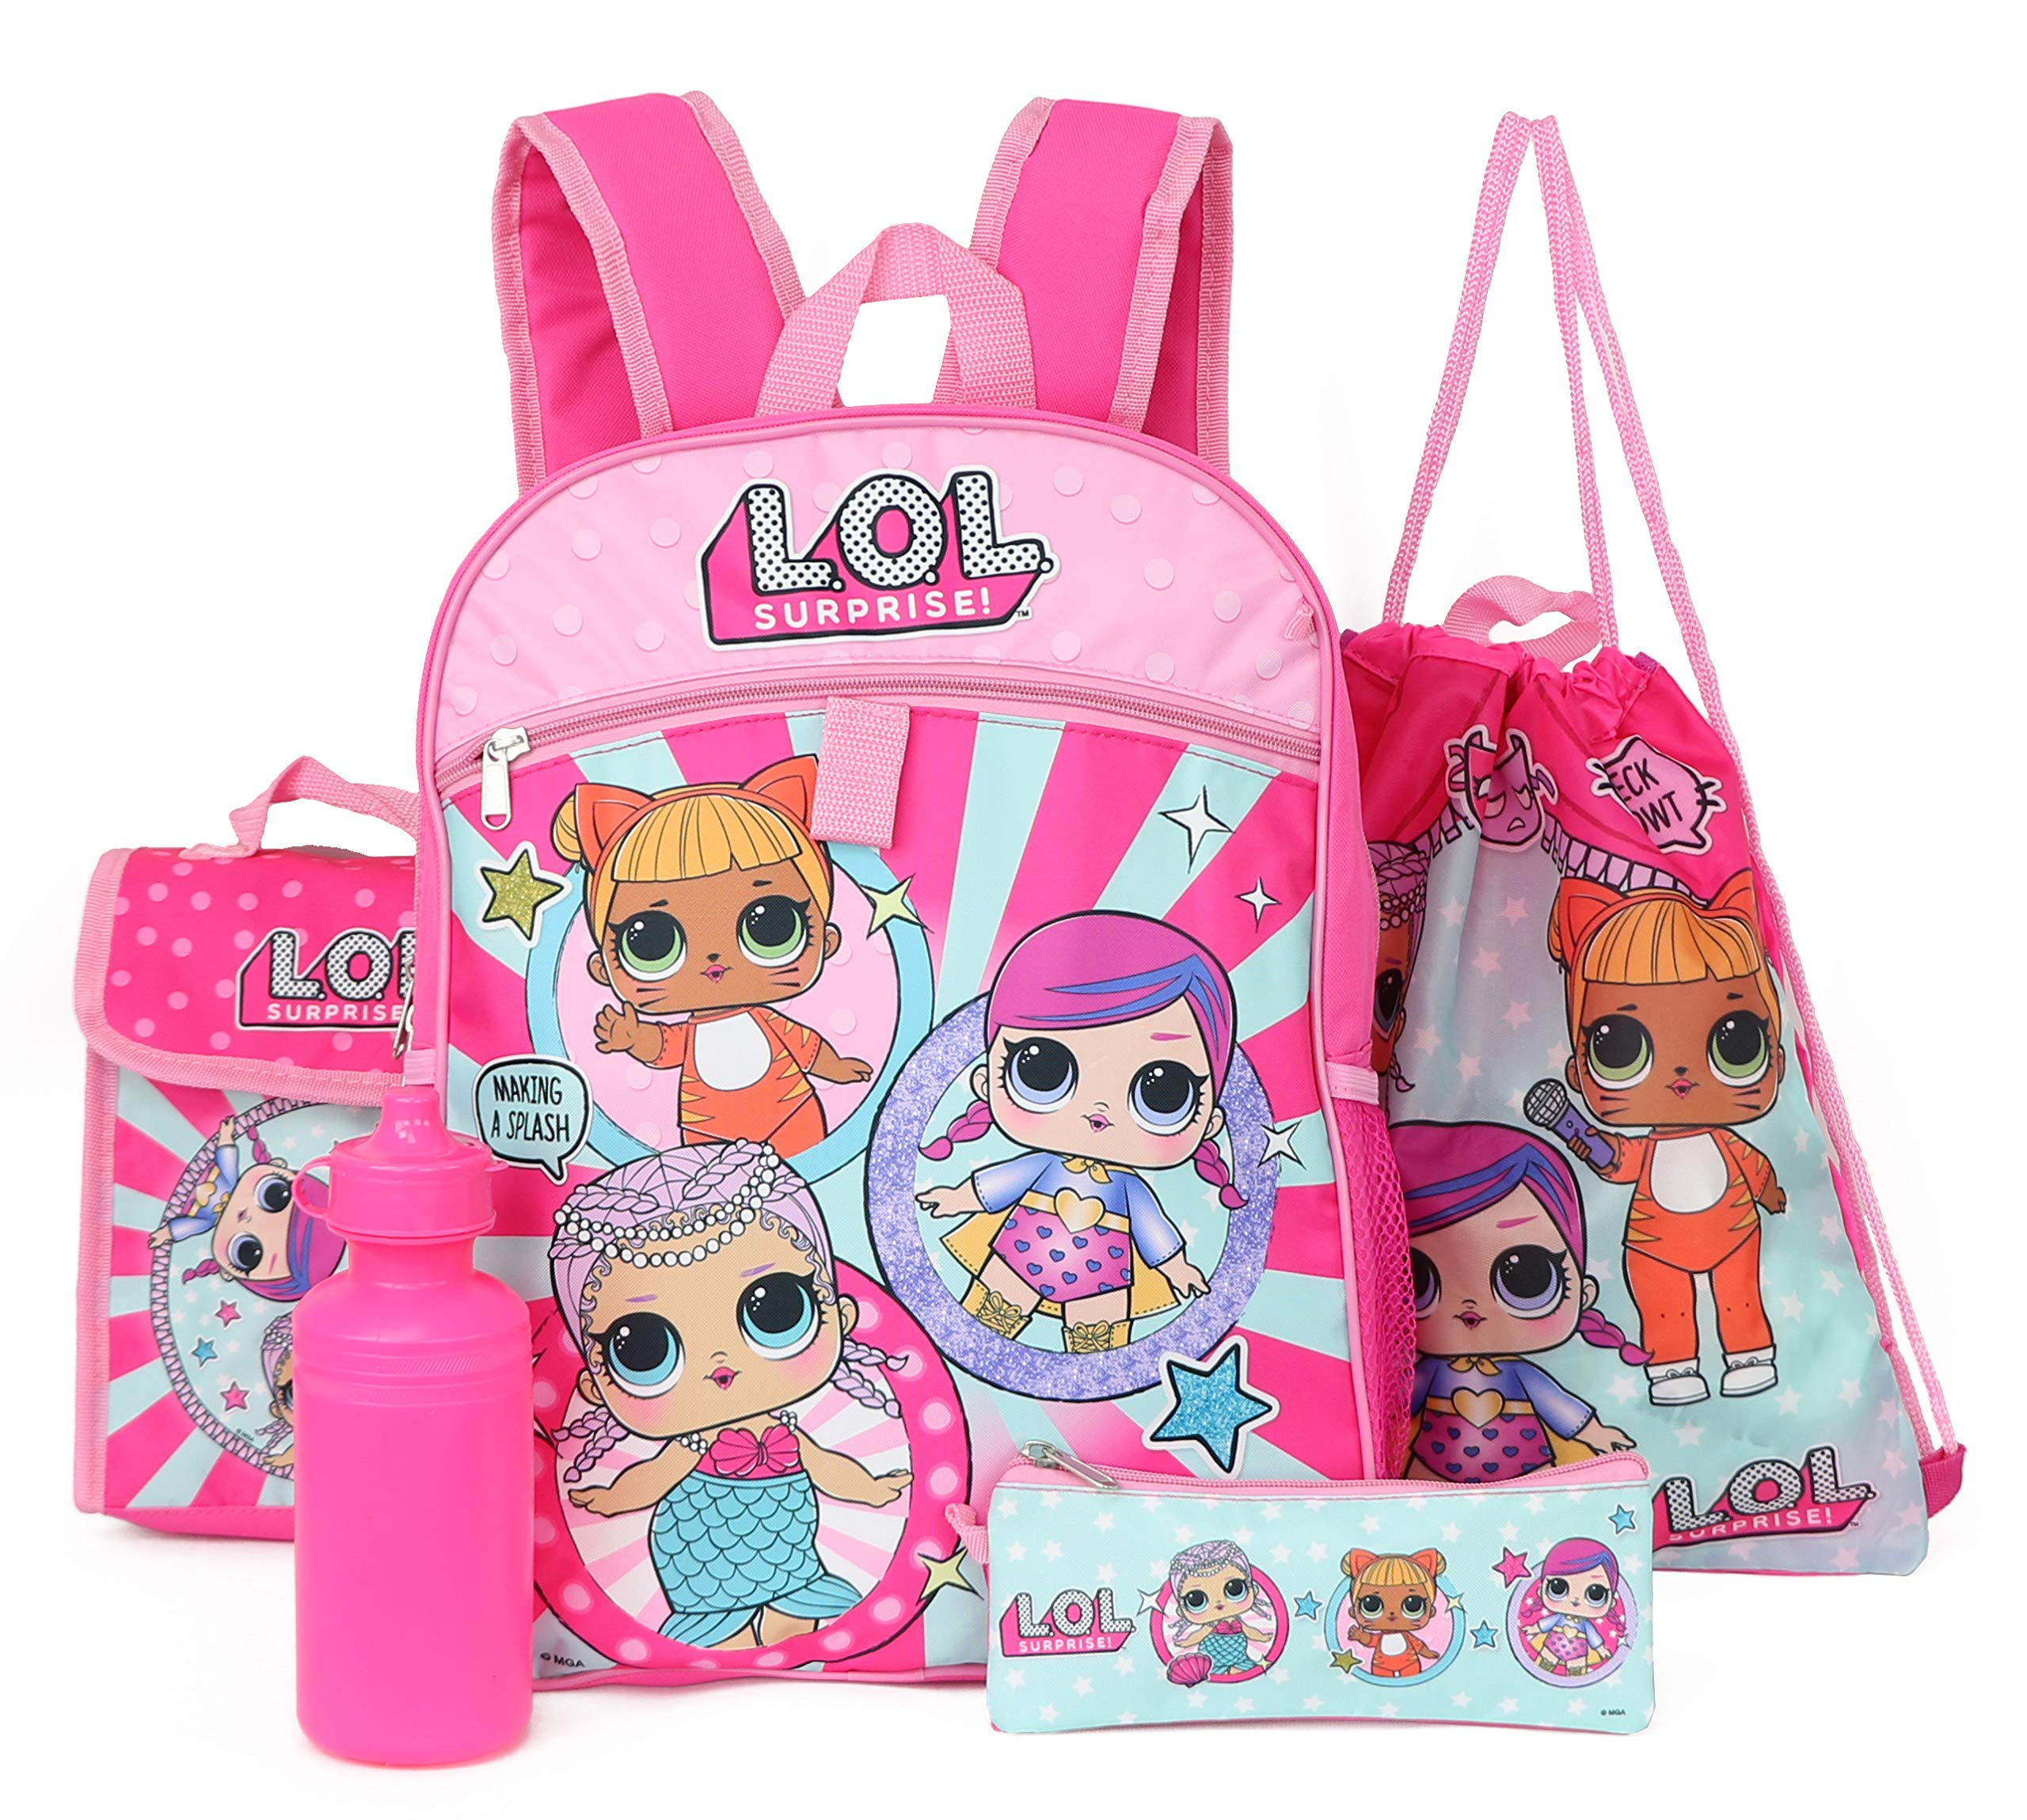 LOL Surprise 5-Piece Backpack Set - pink/multi, one size